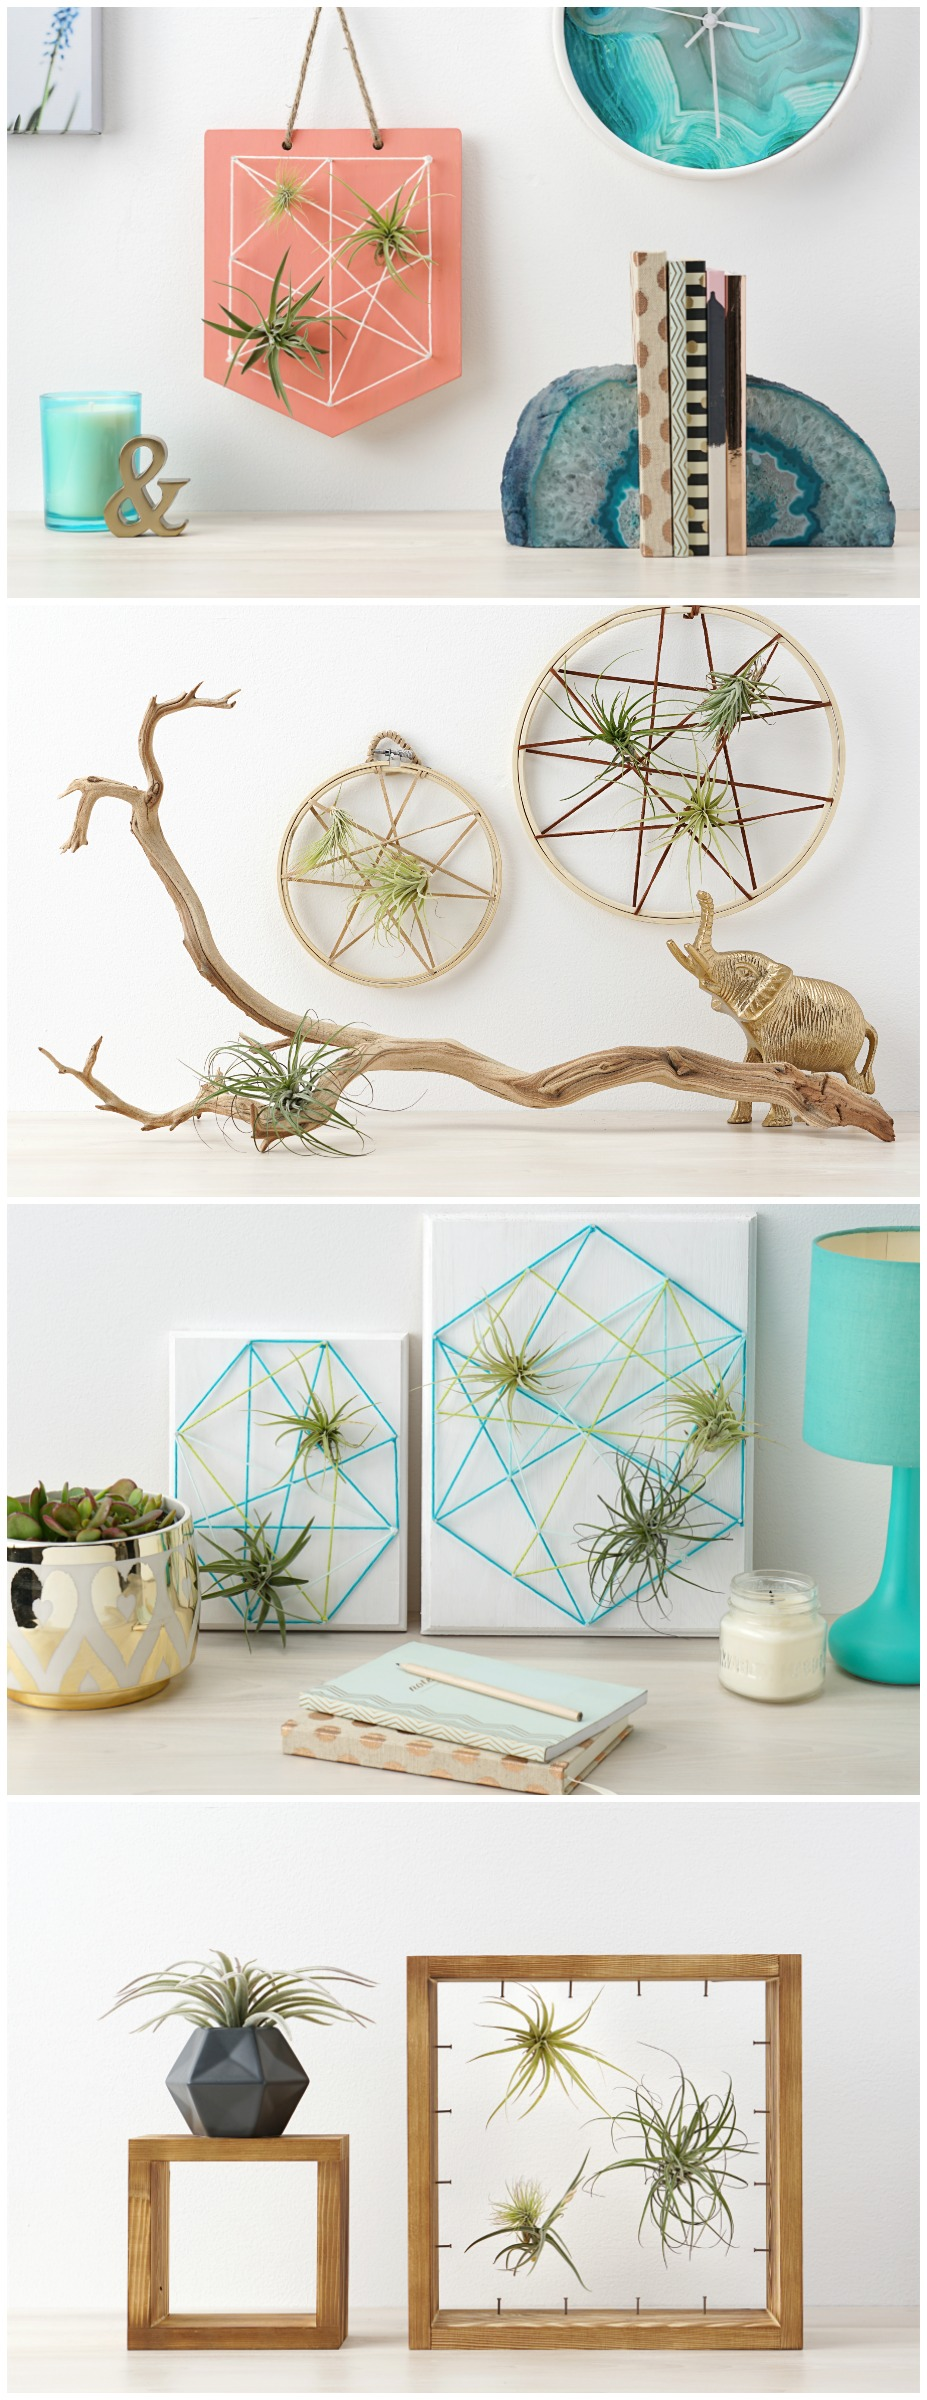 Looking for an easy but beautiful handmade gift that's perfect for just about any occasion? Housewarming gifts, graduation gifts, teacher gifts, wedding shower gifts, Mother's Day gifts, etc? We're combining two of our favorite things-- air plants and string art to create one amazing project! Check out our DIY Air Plant String Art Tutorial to learn how to make this awesome home decor piece that's easy and low maintenance to care for! #AirPlants #StringArt #DIY #Crafts